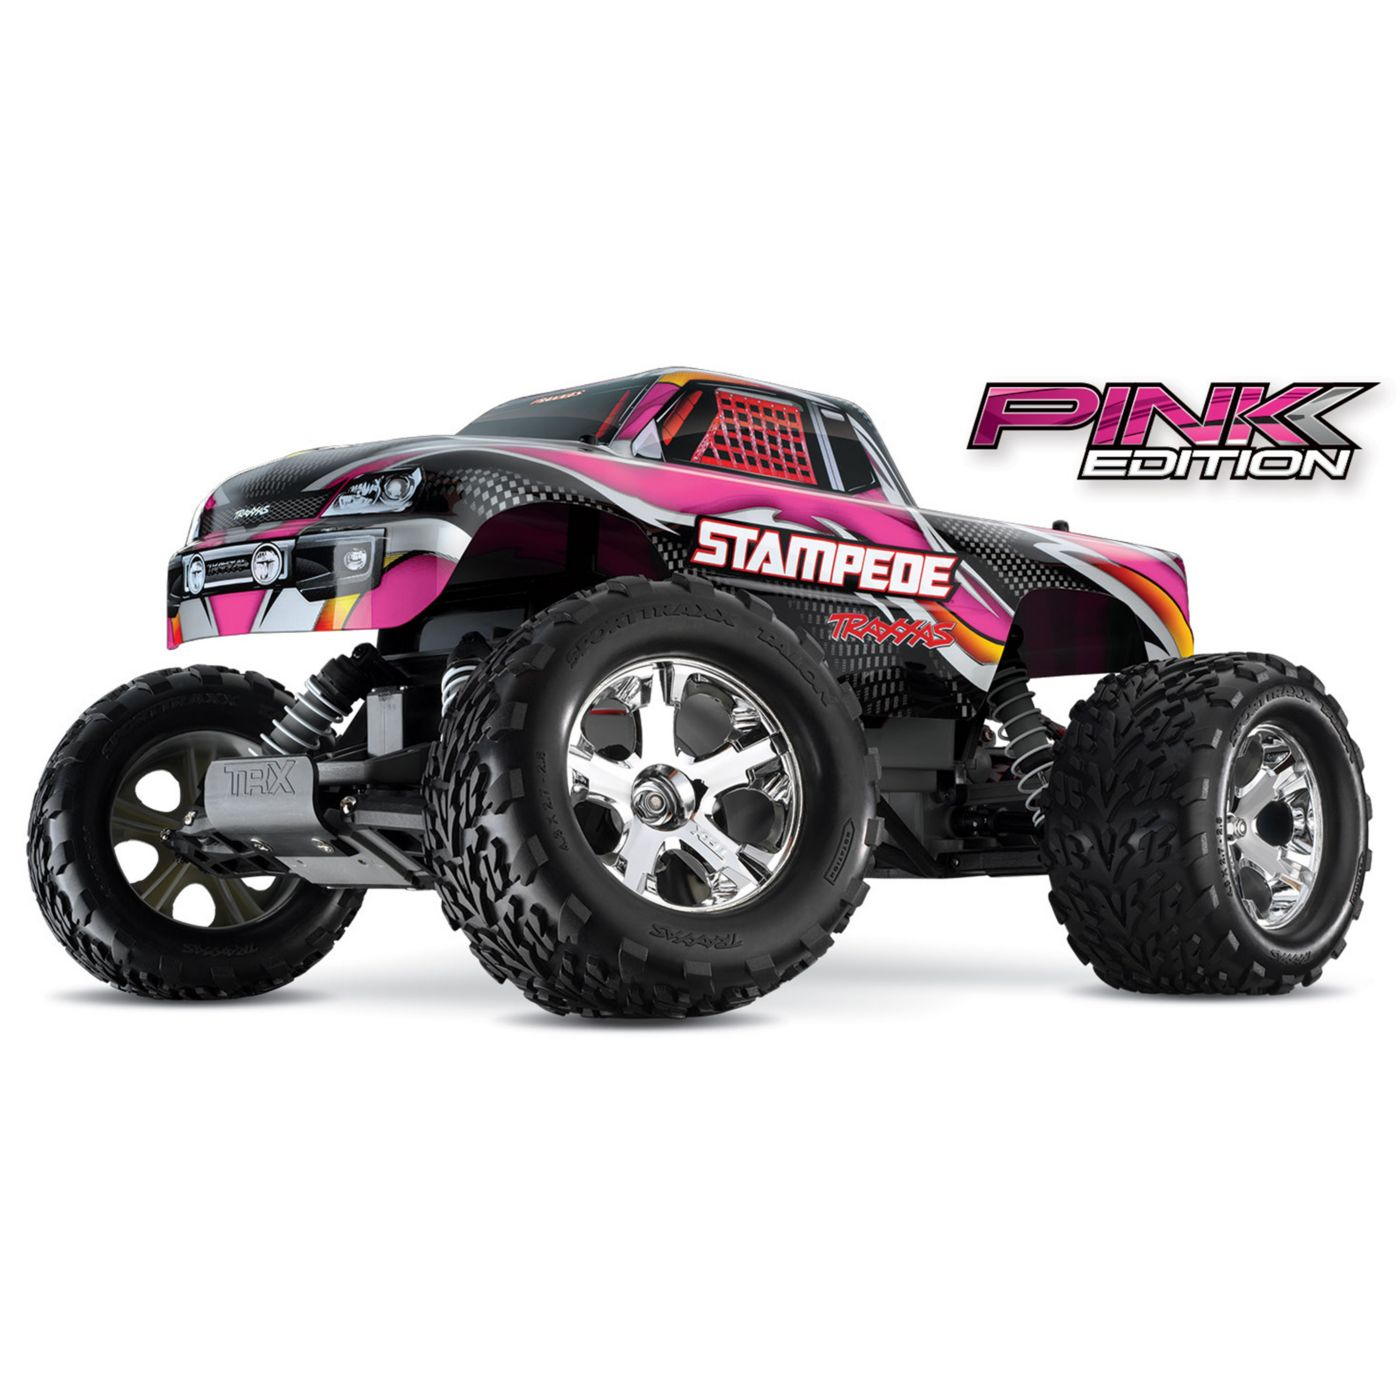 1/10 Stampede XL-5 2WD Monster Truck Brushed RTR, Pink Edition